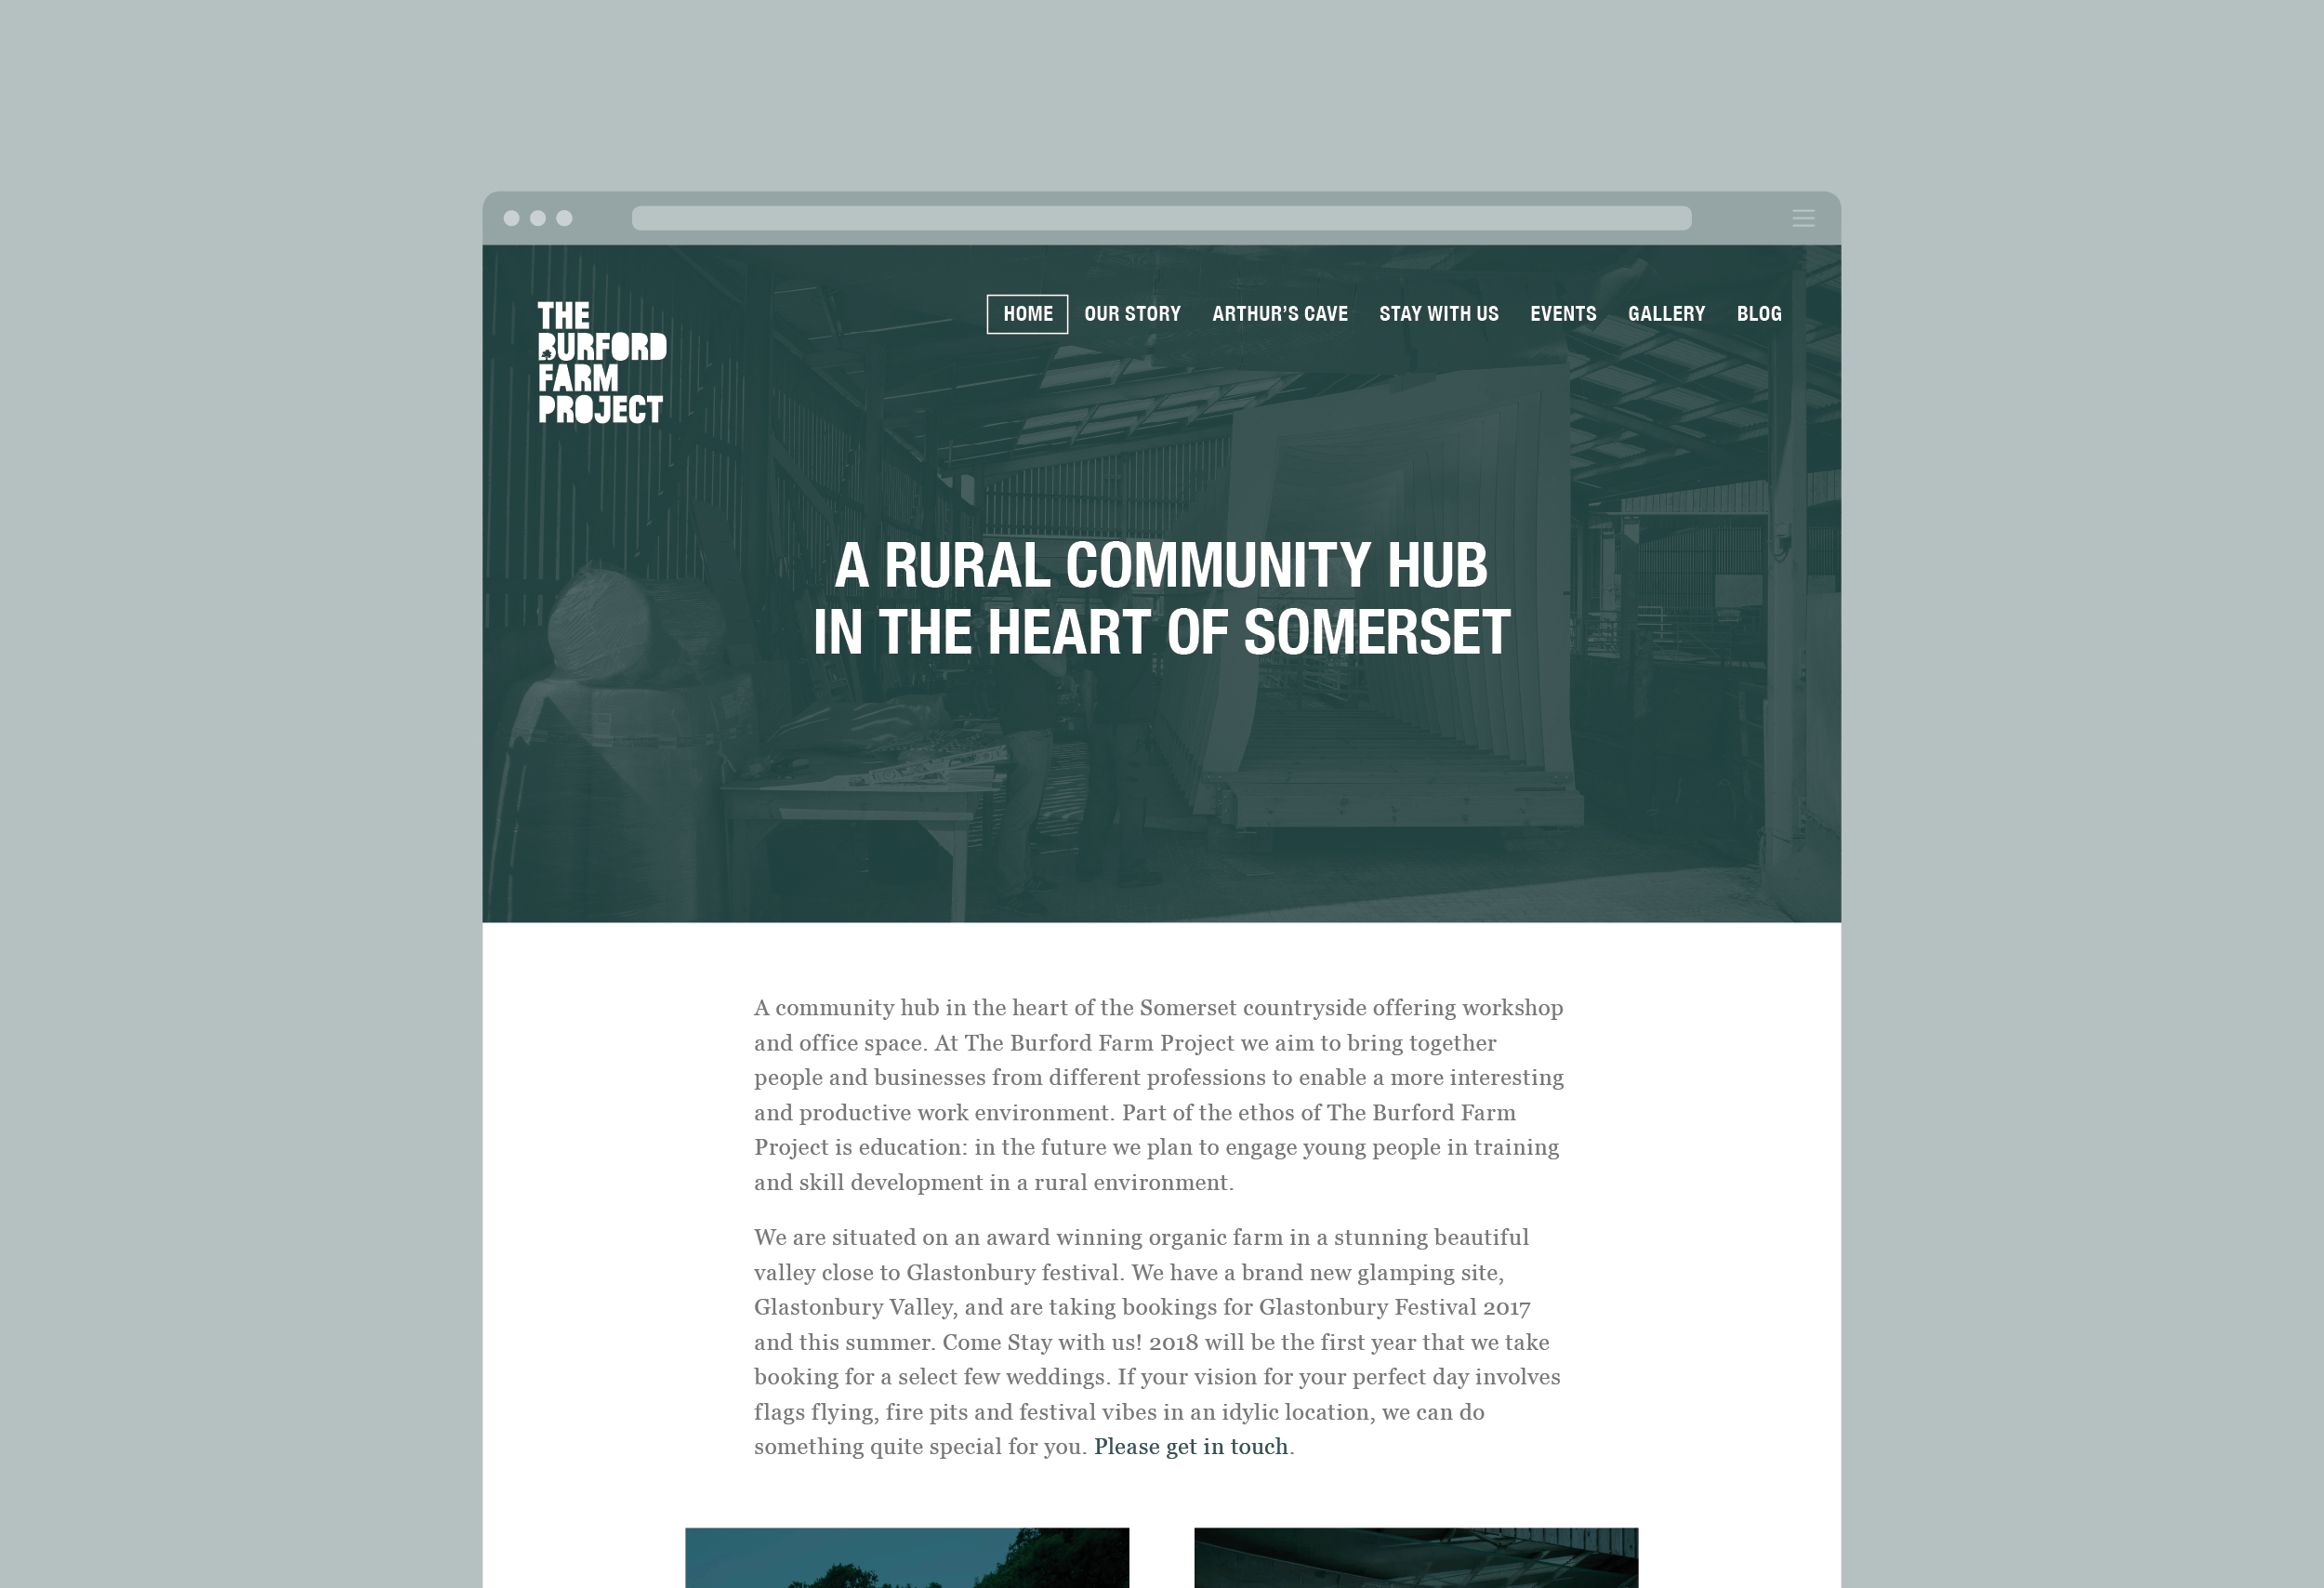 Alan_Clarke-Symonds_Burford Farm_responsive website design_homepage view_rural community page.jpg